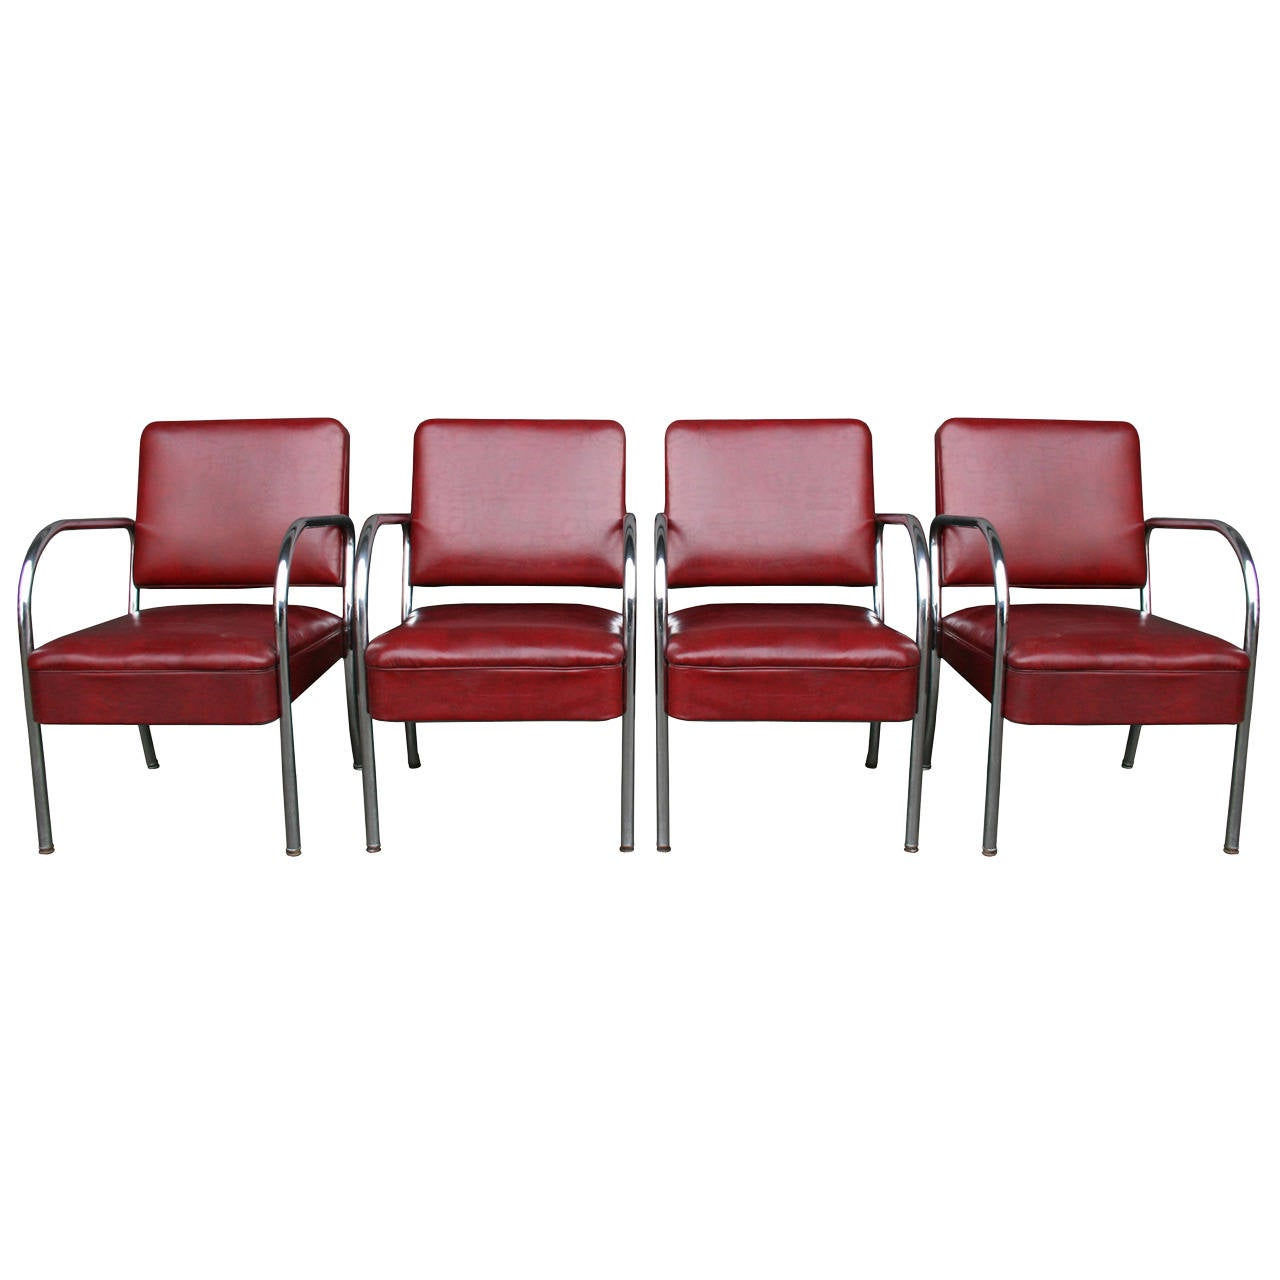 Barber Shop Furniture : ... of Four Maroon Vinyl and Chrome Barber Shop Chairs C1945 at 1stdibs